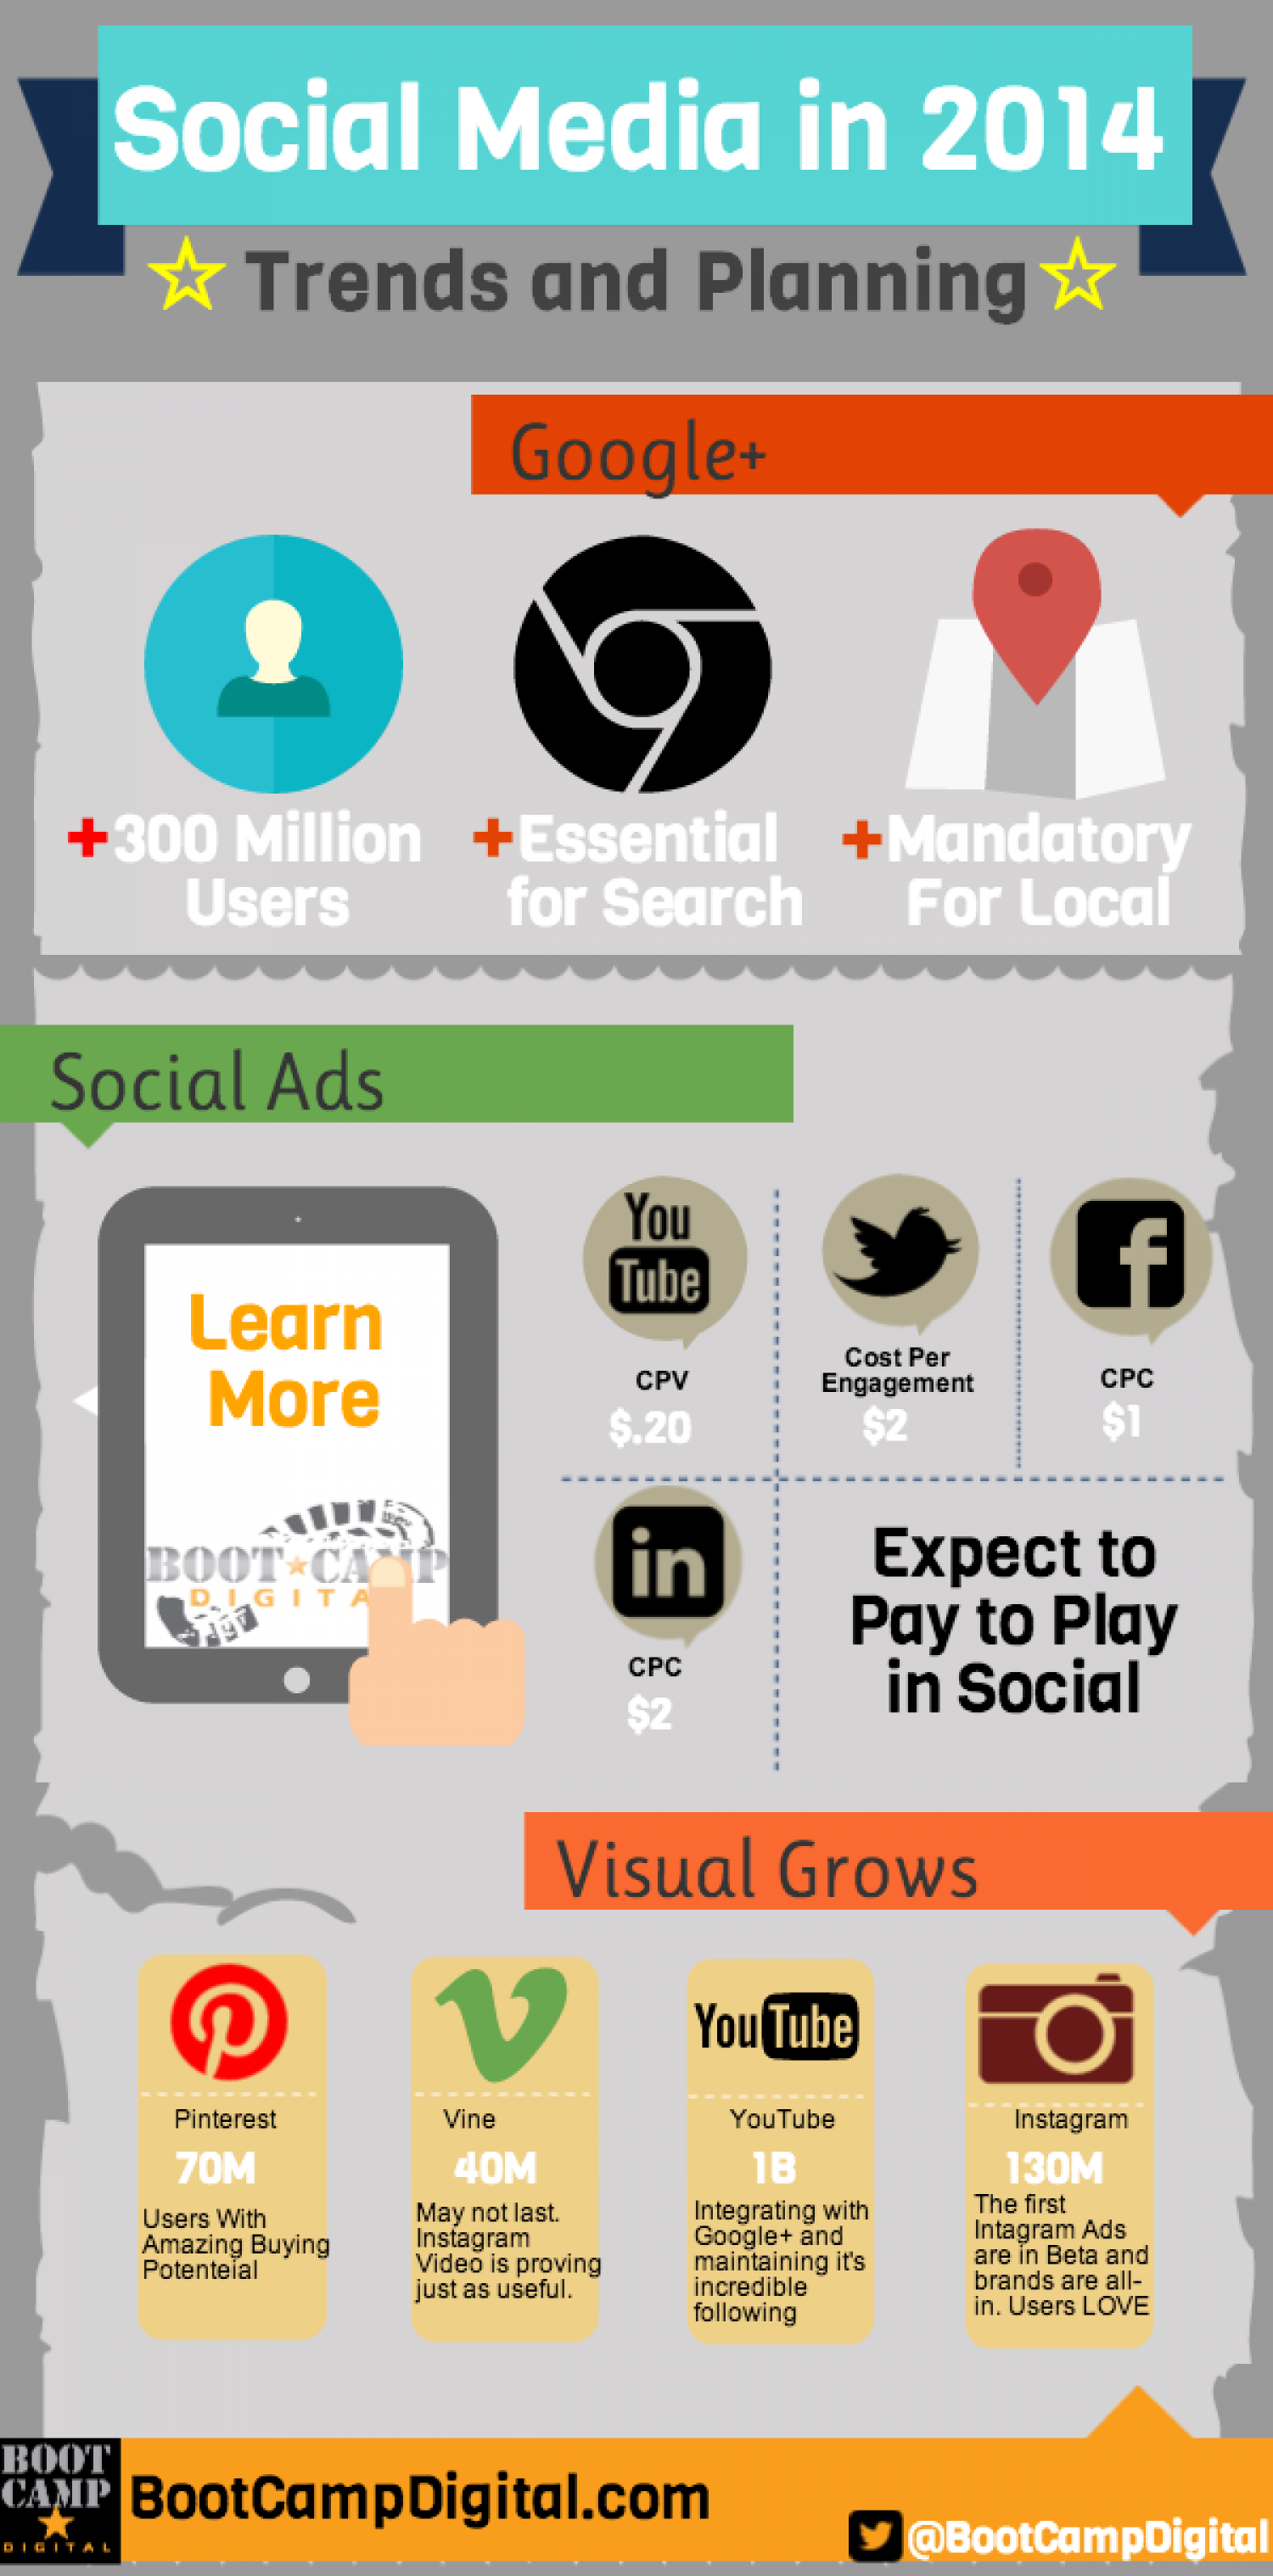 Social Media Trends in 2014 Infographic